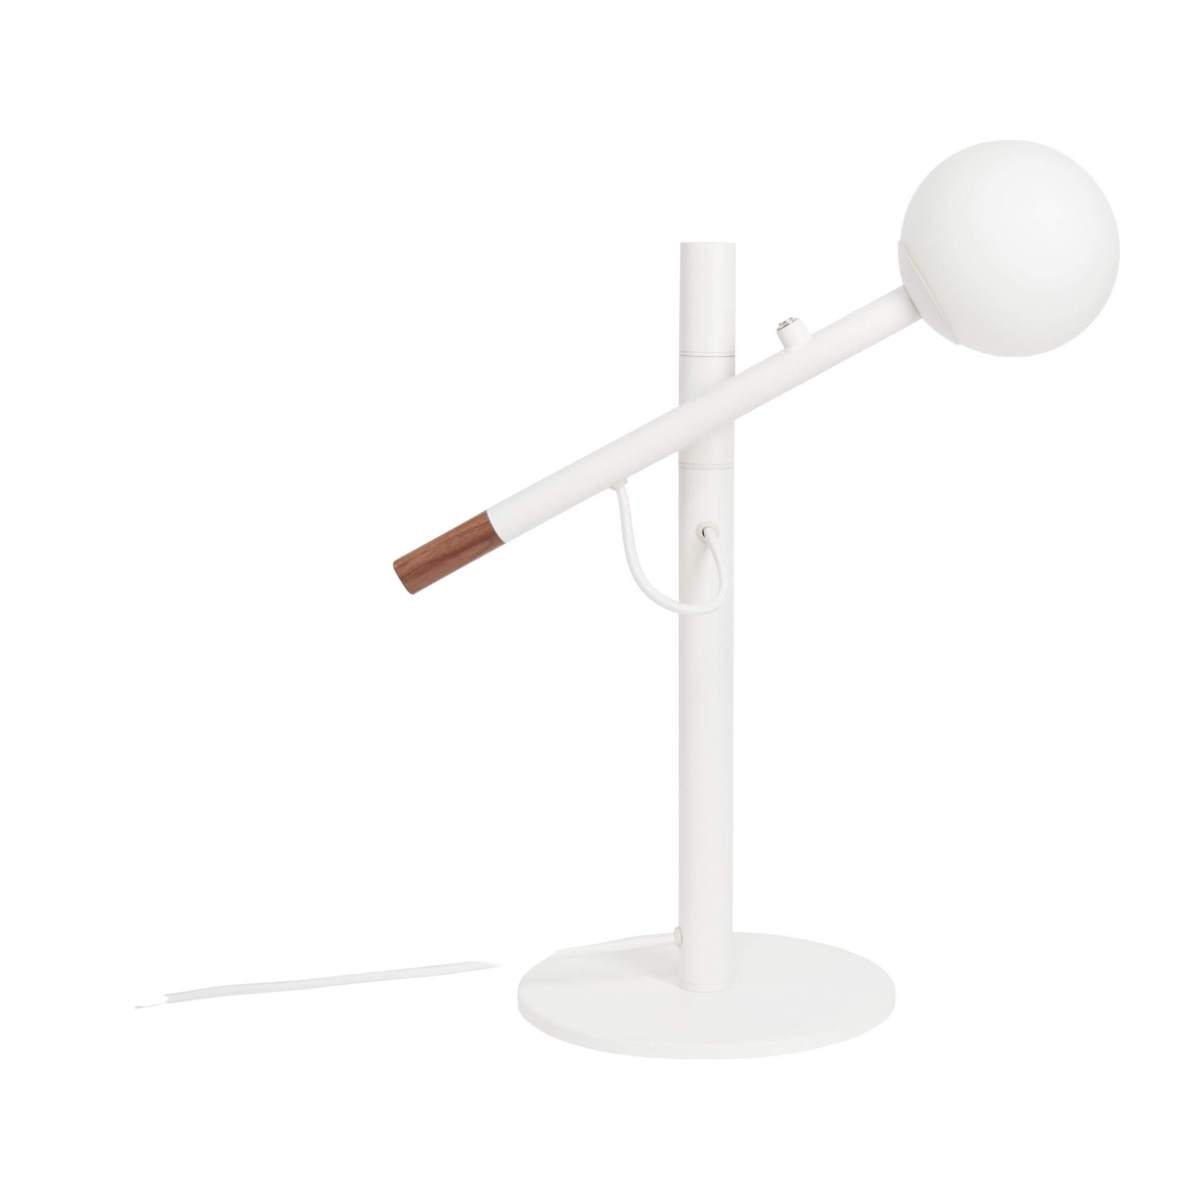 Metal and wood table lamp, white - Design by Gaston Lobet n°3